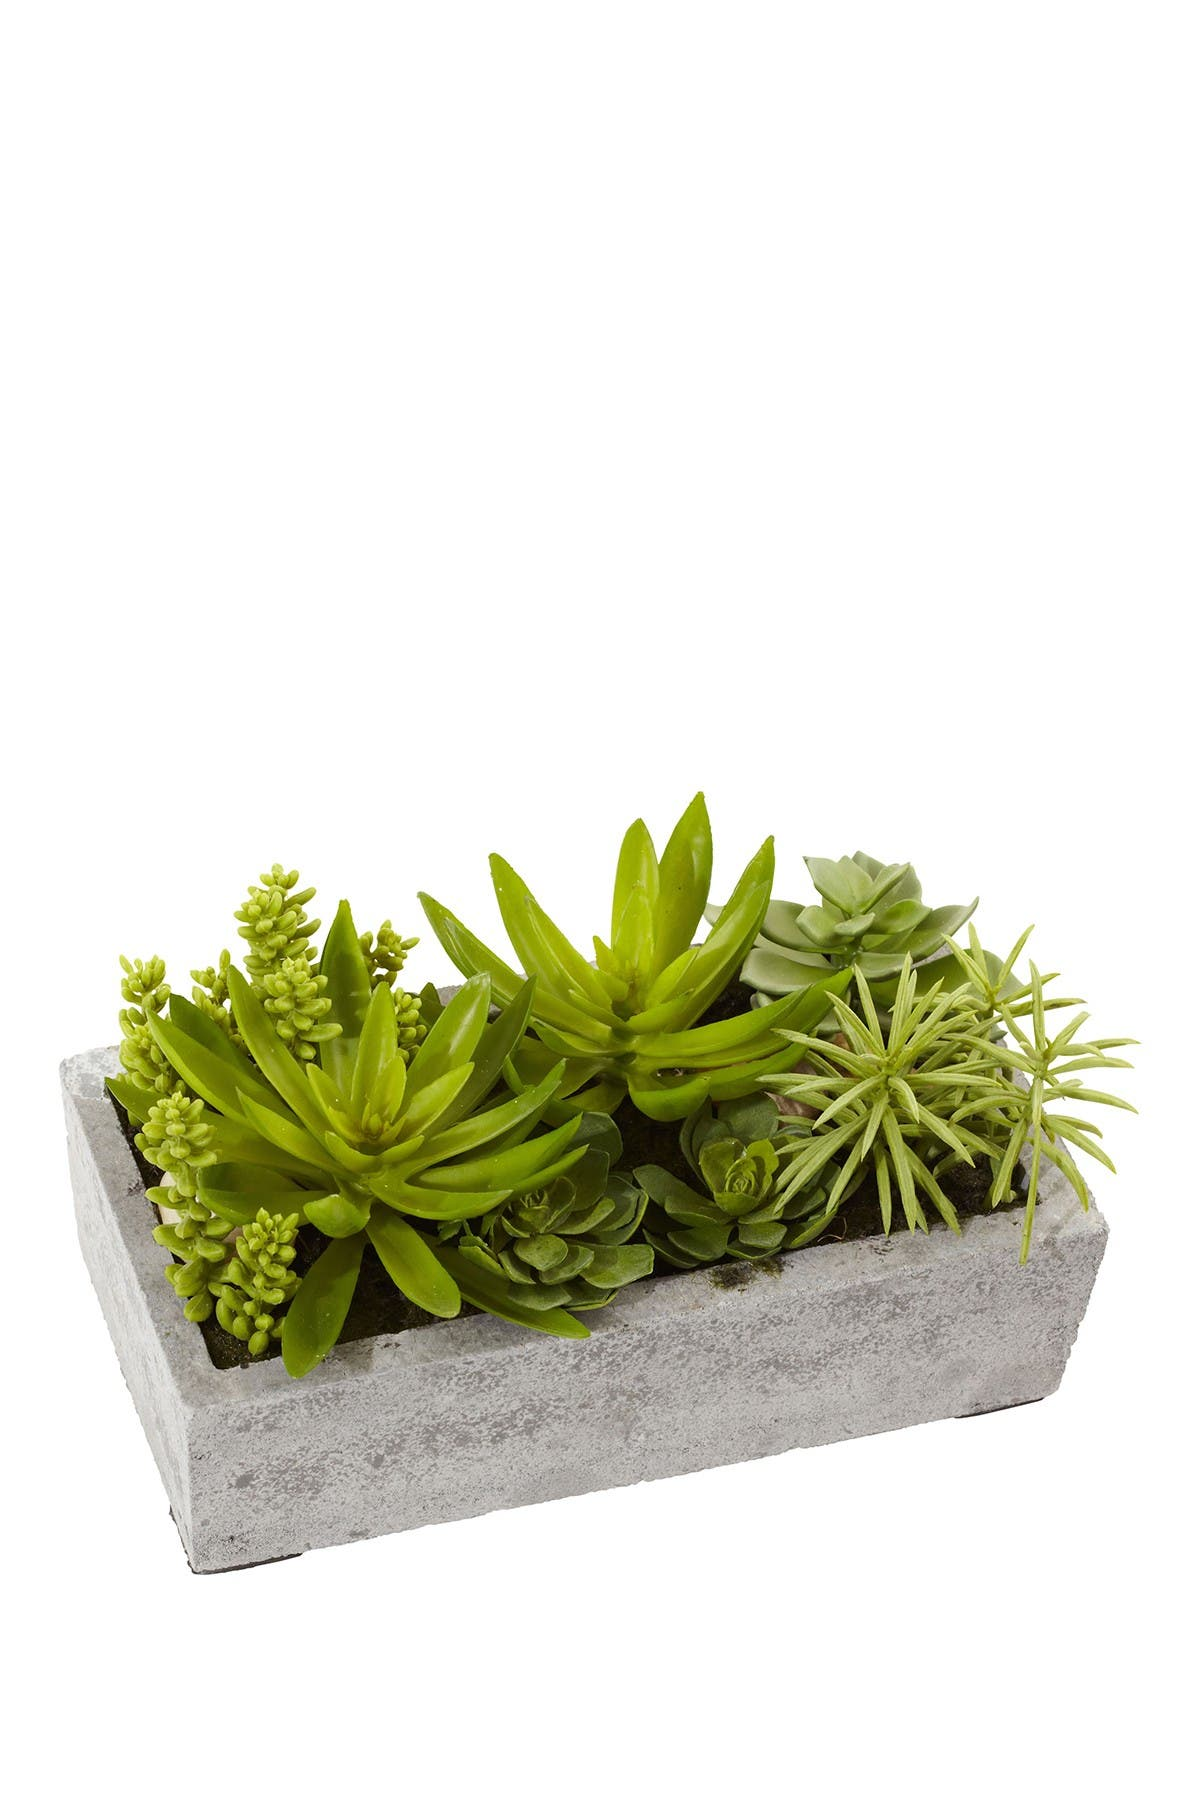 Image of NEARLY NATURAL Succulent Garden with Concrete Planter  - Green